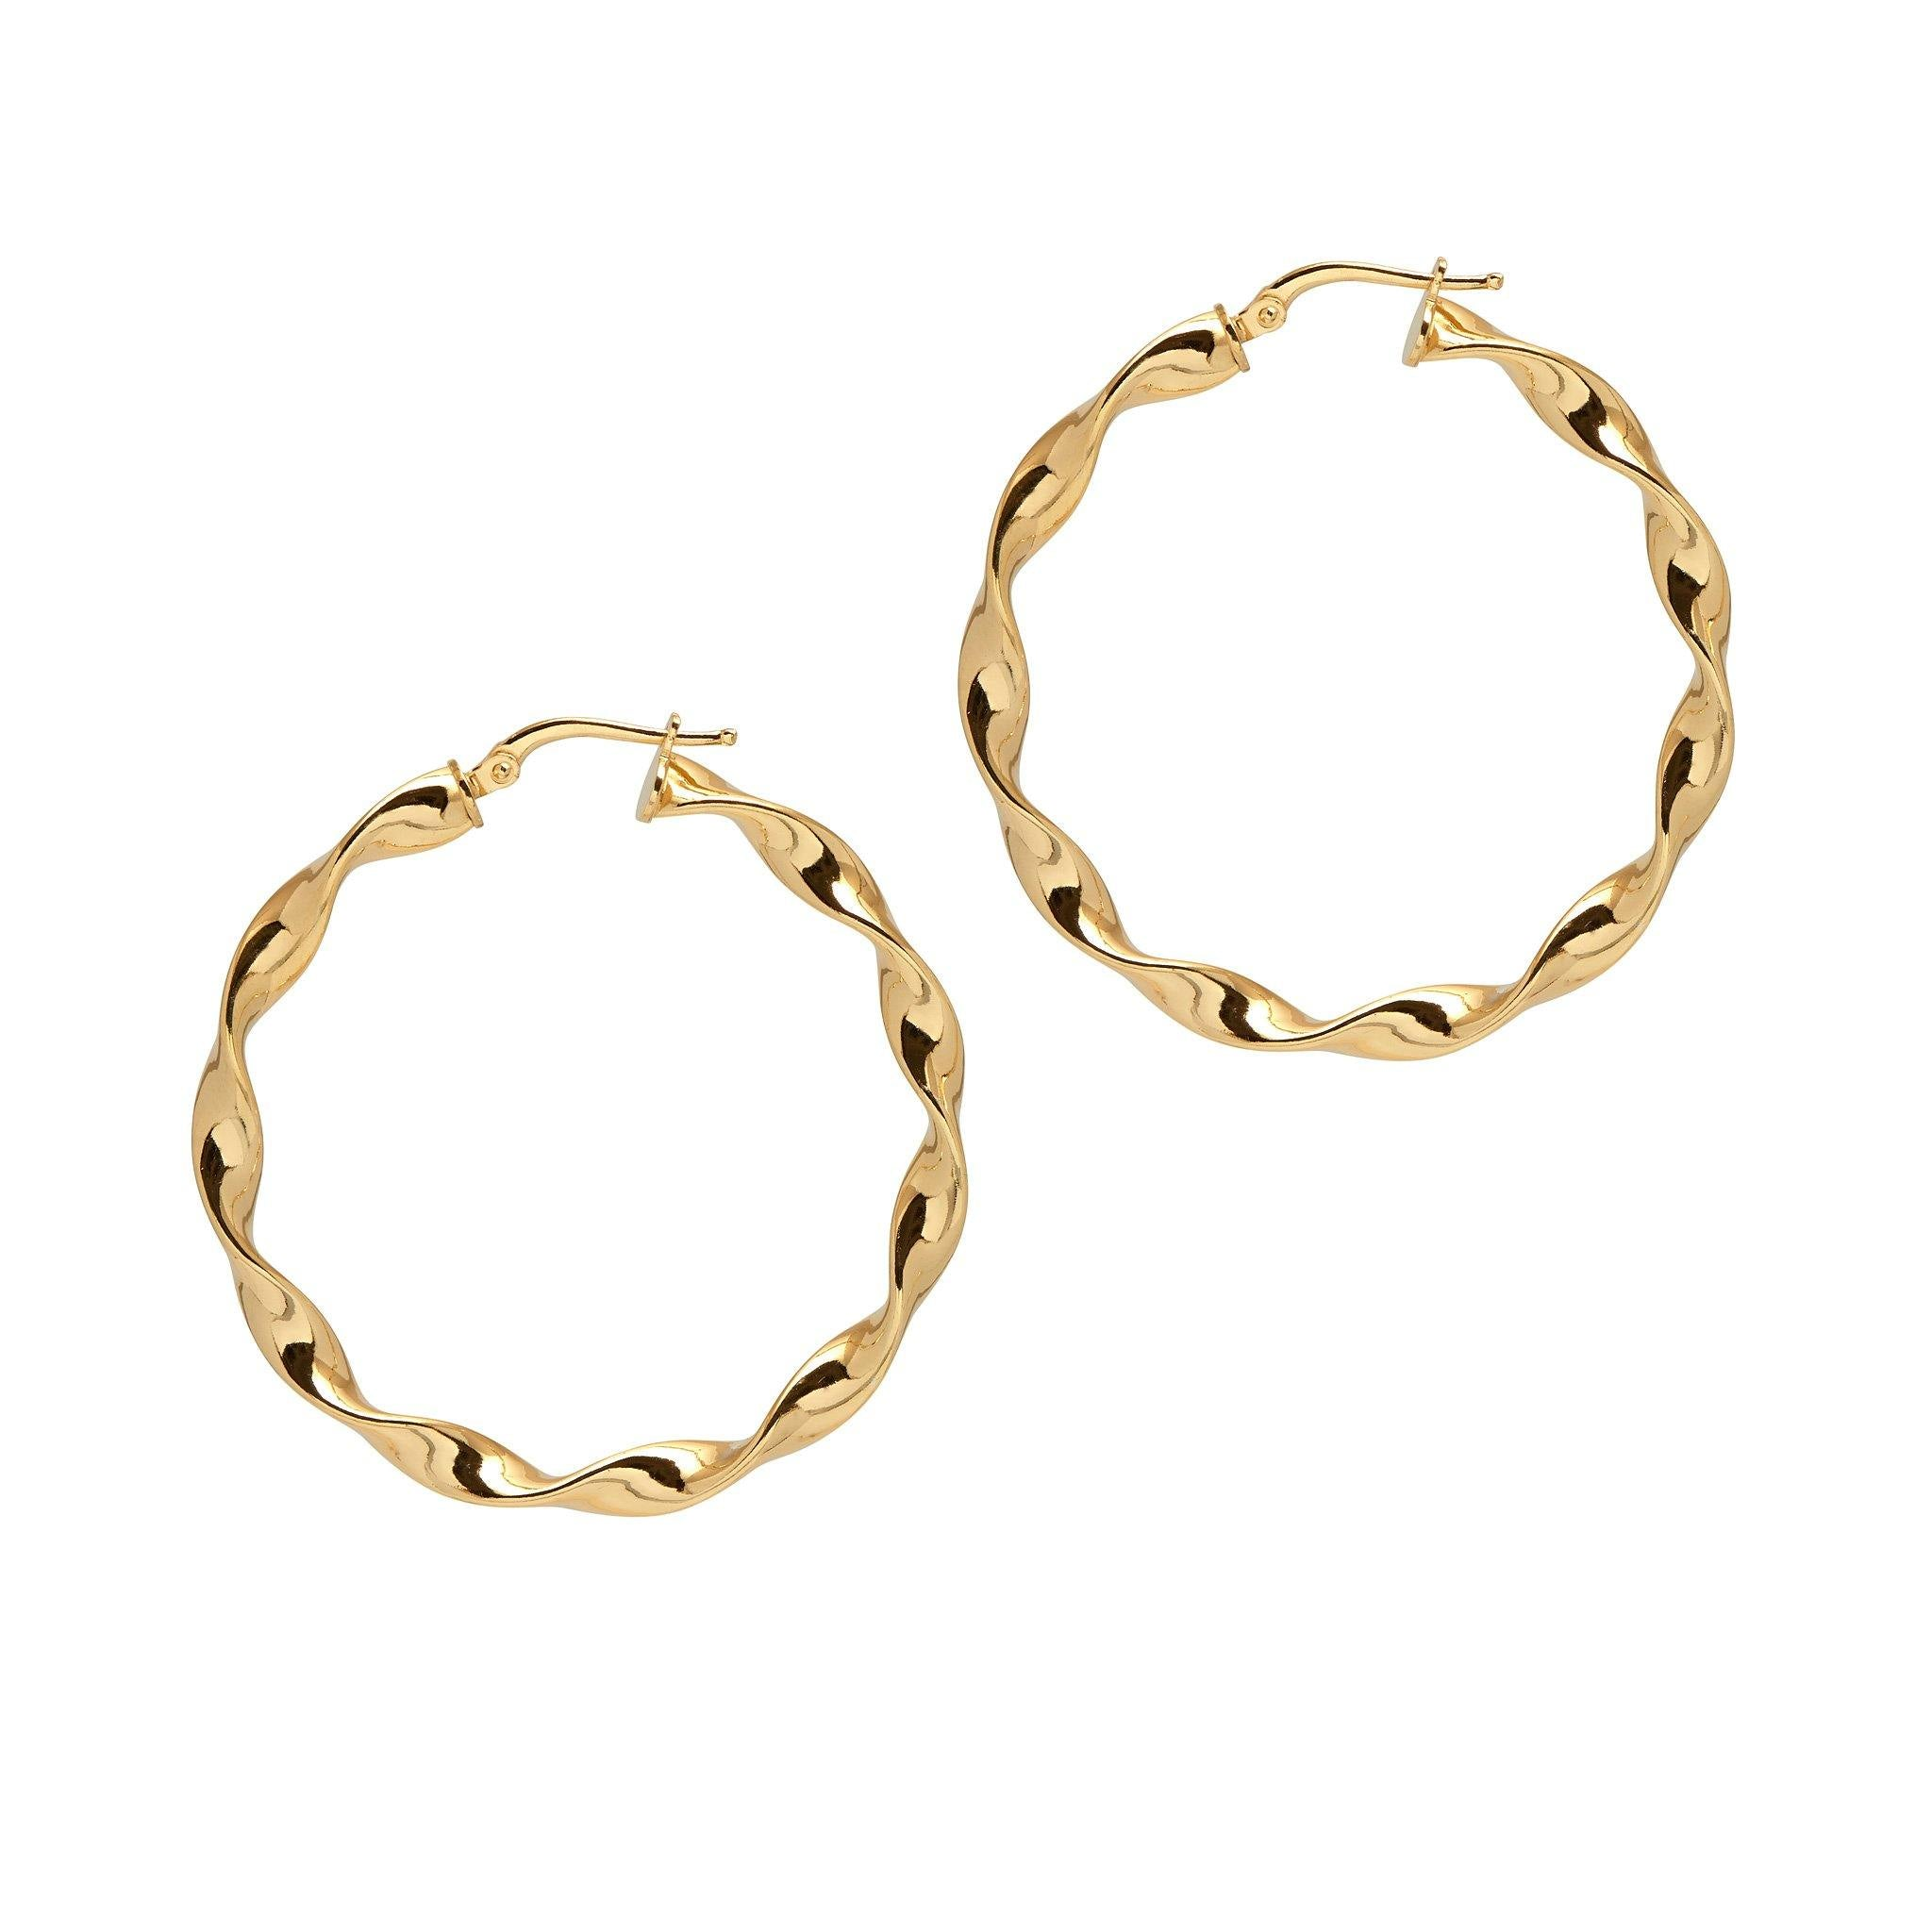 La CURLY WURLY TWISTS - Silver or Gold - The Hoop Station 925 Sterling Silver Hoop Earrings Gold Huggies